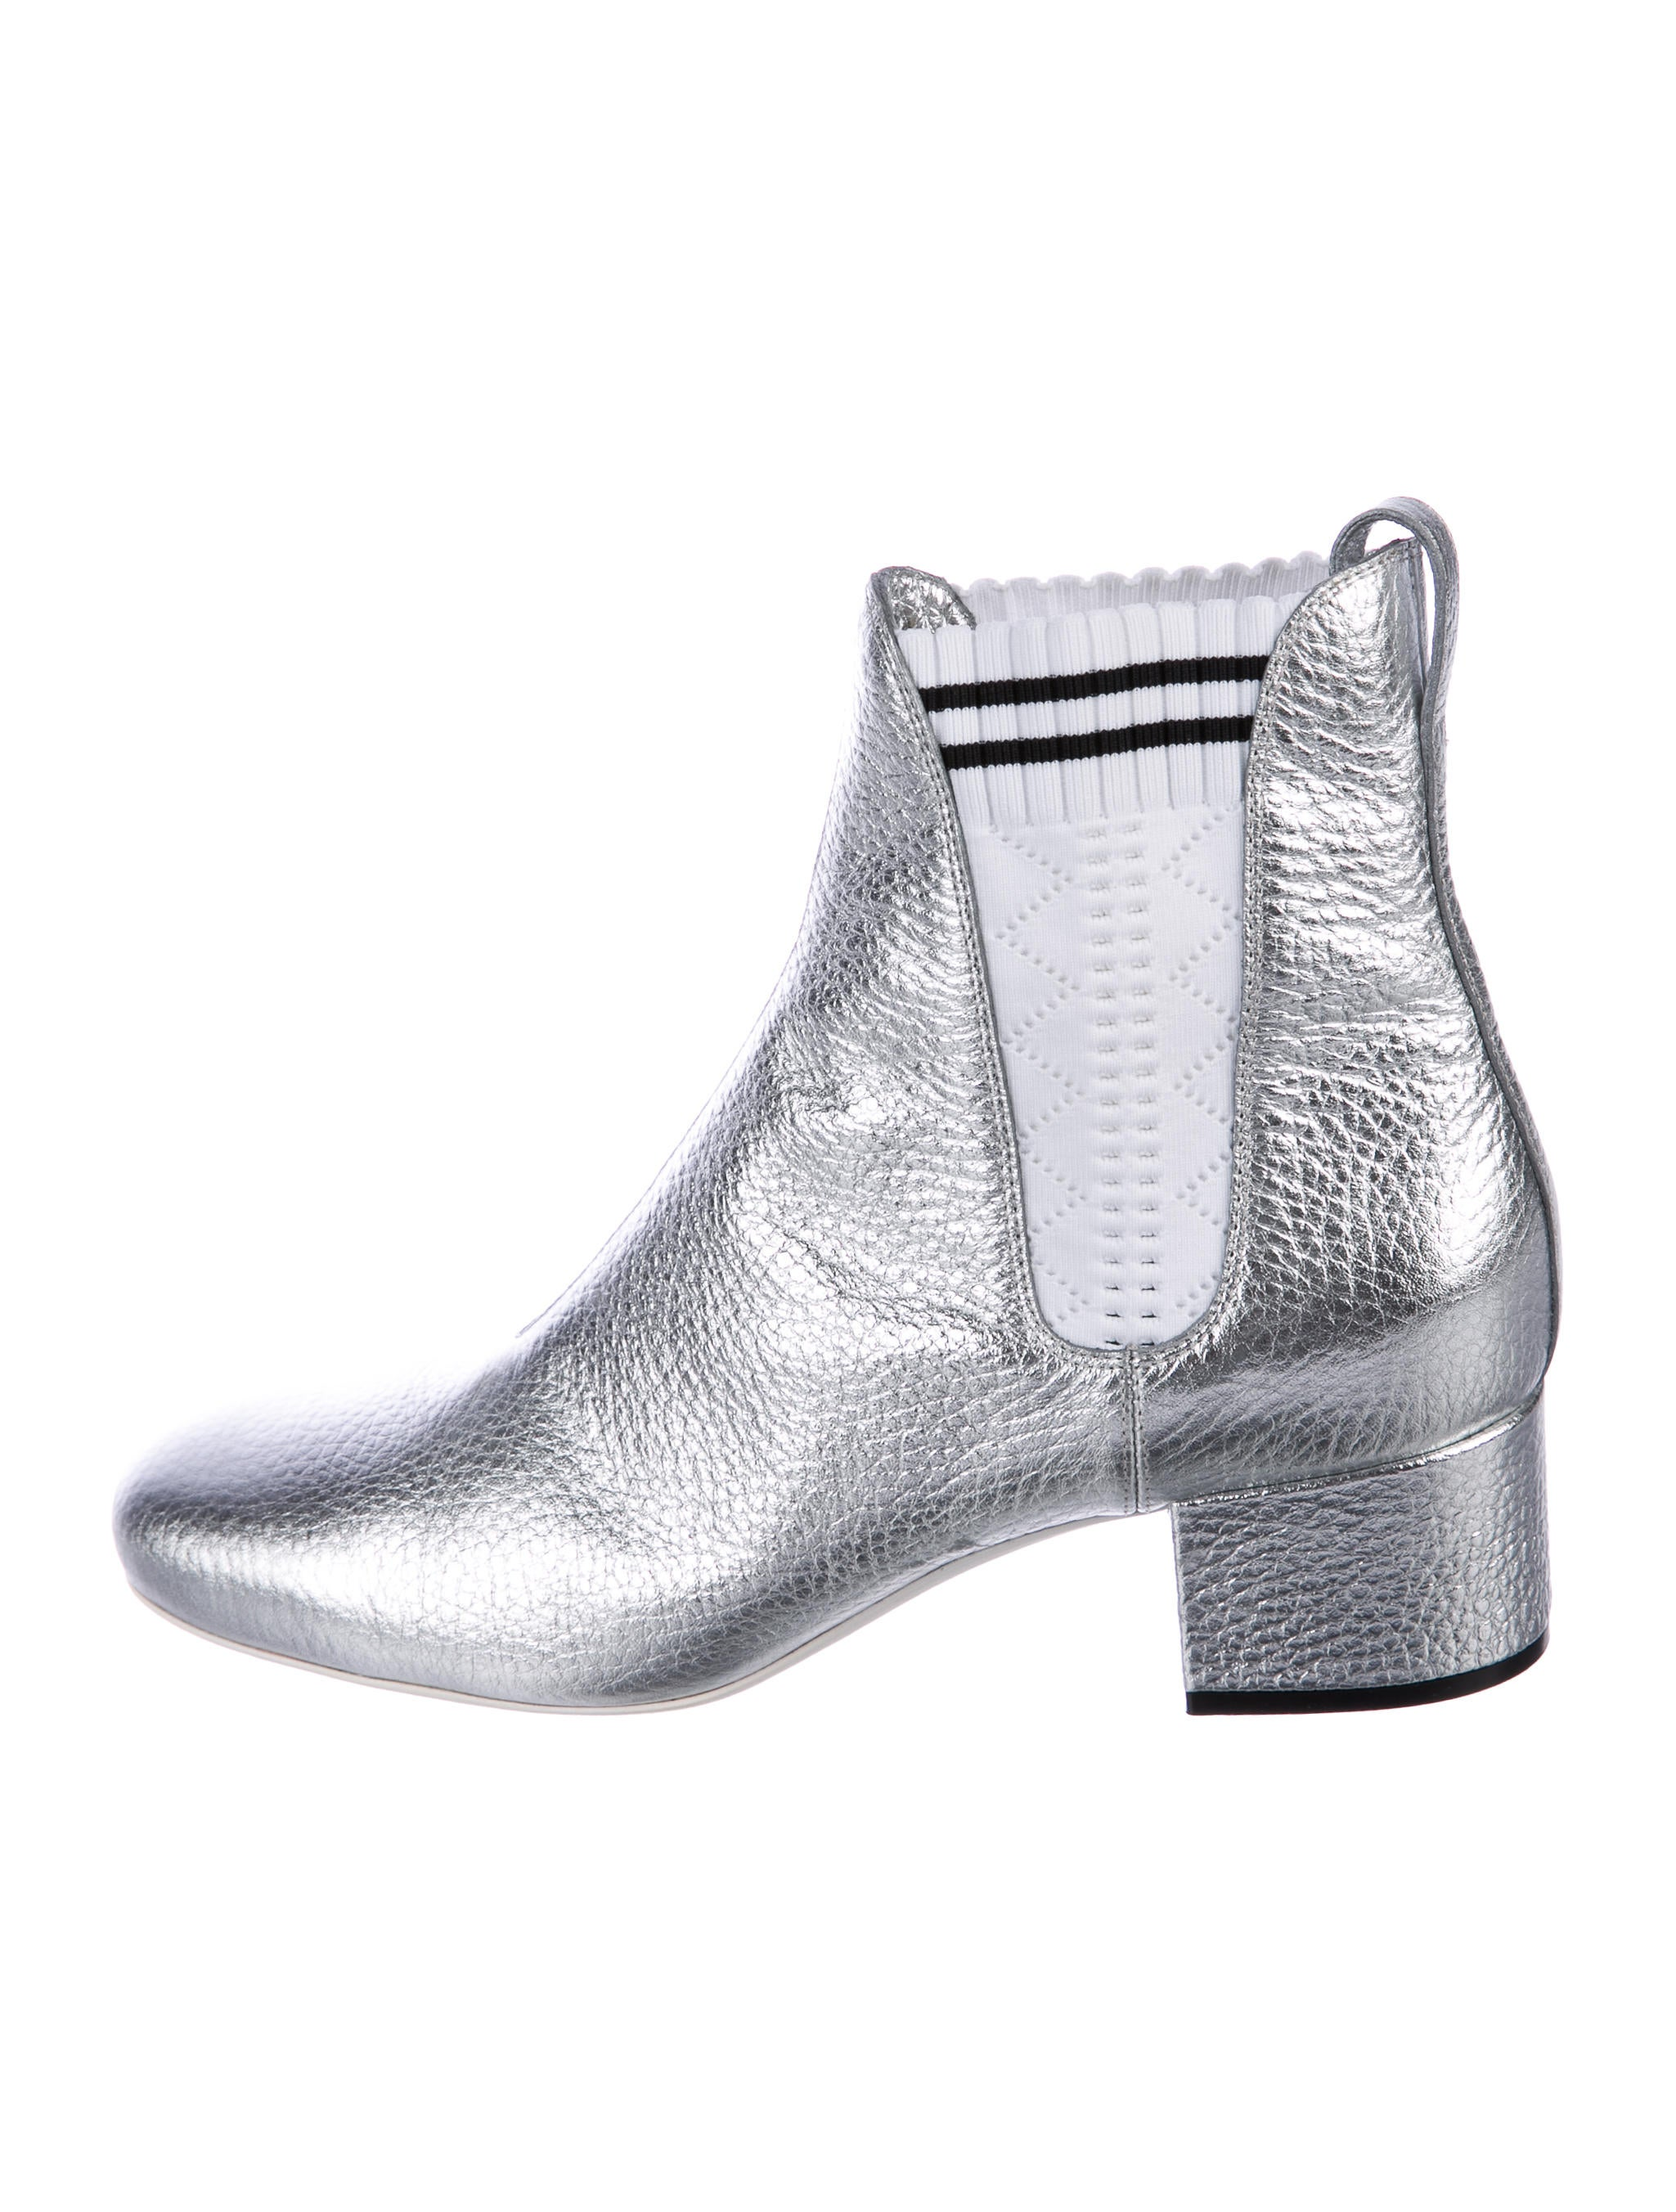 Fendi Antoinette Ankle Boots w/ Tags sale sale online clearance cheapest price discount outlet store fGdGIMJ